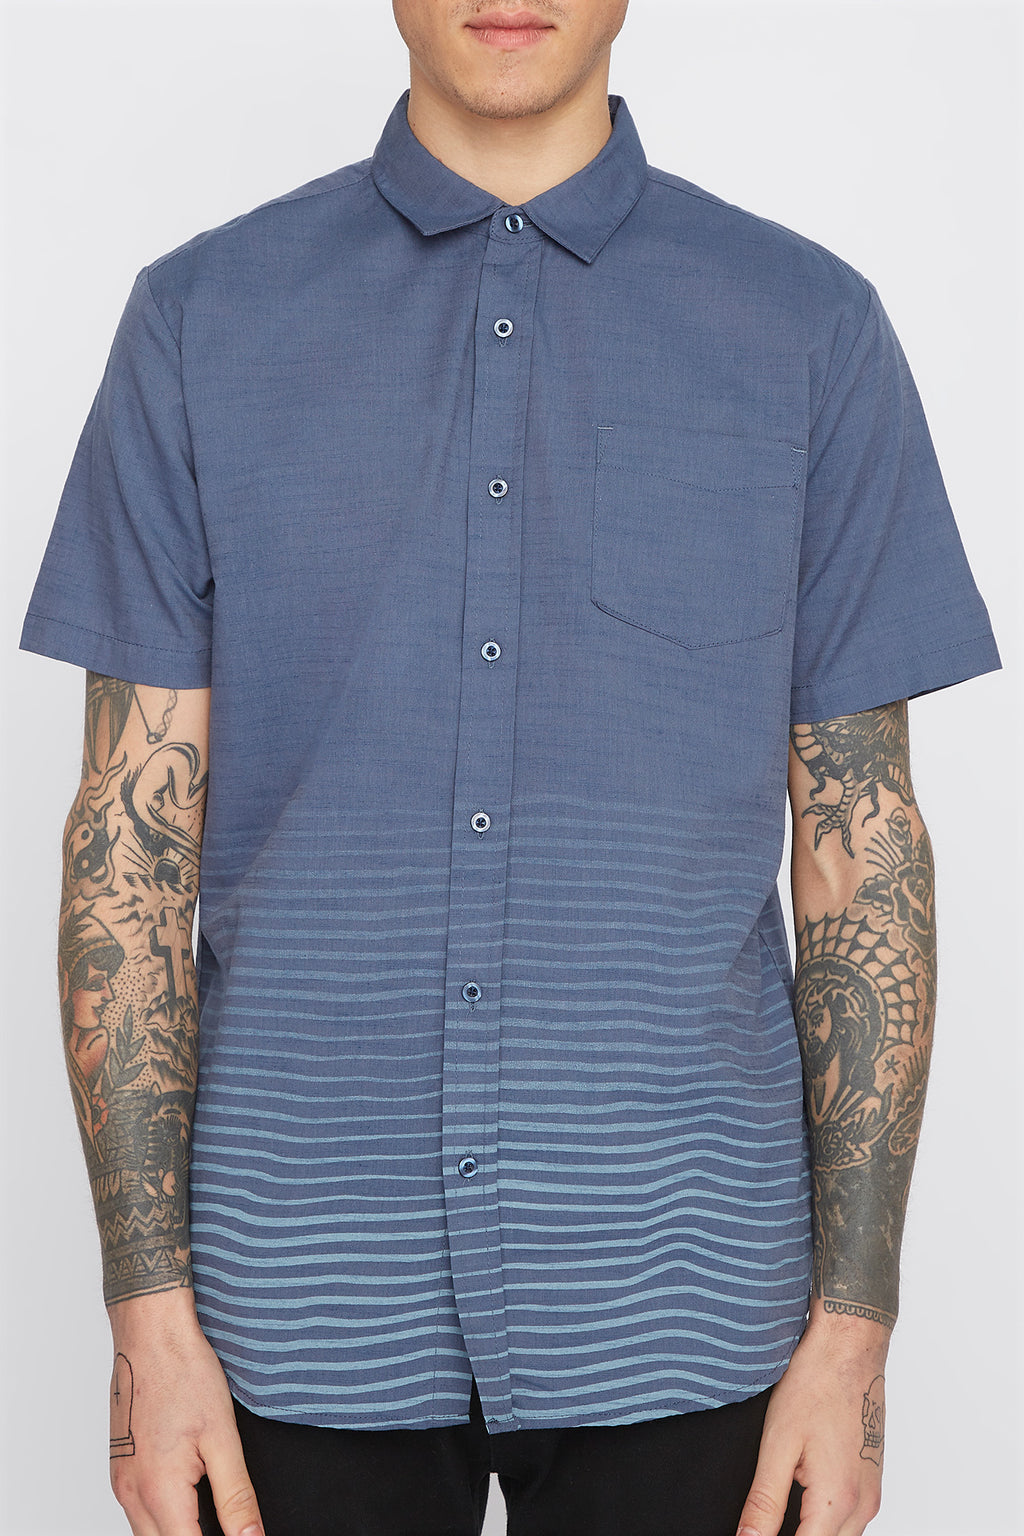 West49 Mens Wave Graphic Button Up